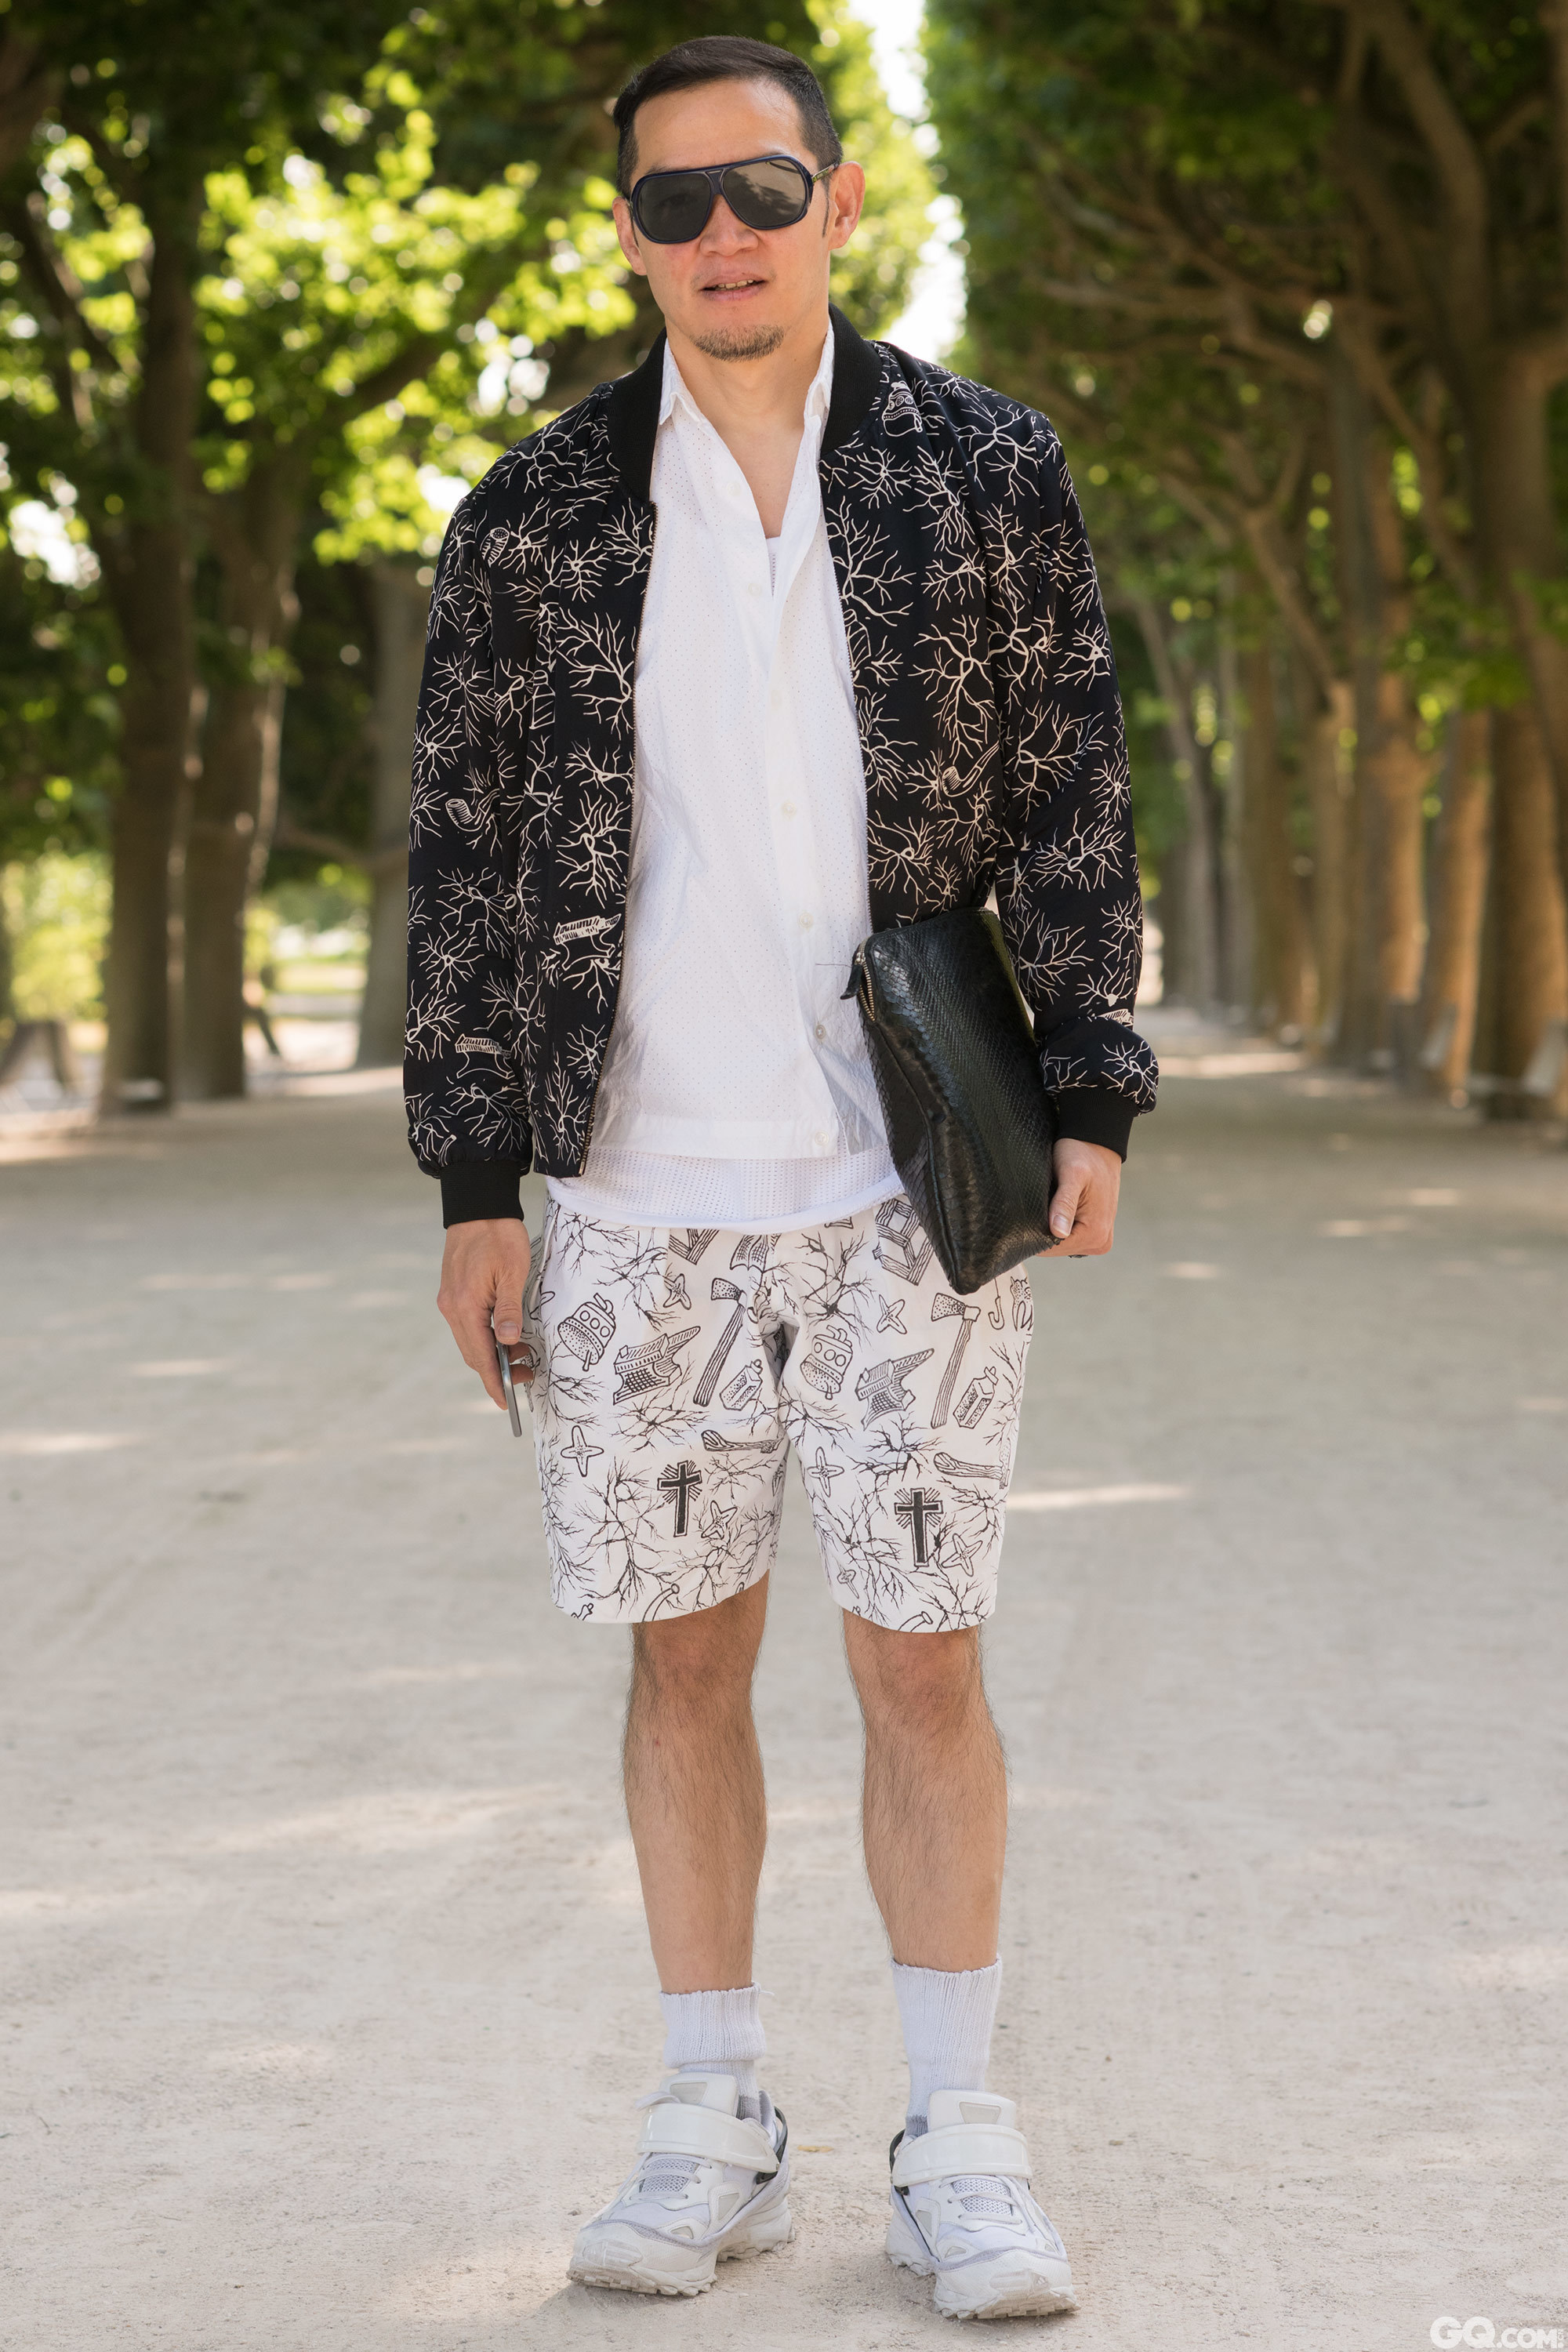 Sunglasses: Raf Simons Jacket: Populo Batik Shirt: Collard Jeans: Populo Batik Shoes: Raf Simons Bag: Populo Batik  Inspiration: Something with a lot of white because supposedly it's going to be hot today.  (白色元素很多因为今天可能会很热)